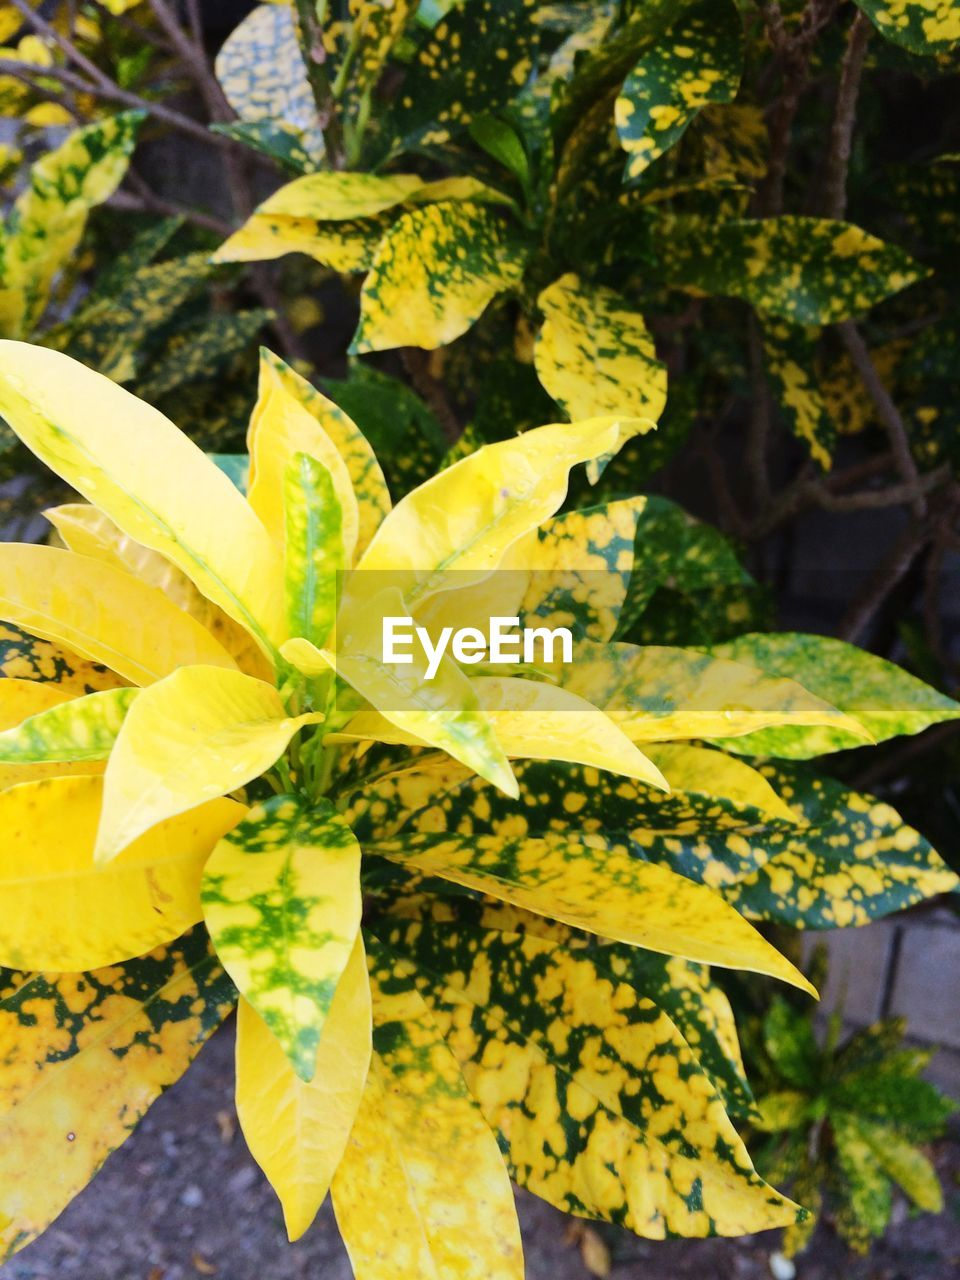 leaf, growth, yellow, nature, green color, day, plant, outdoors, close-up, beauty in nature, no people, freshness, fragility, tree